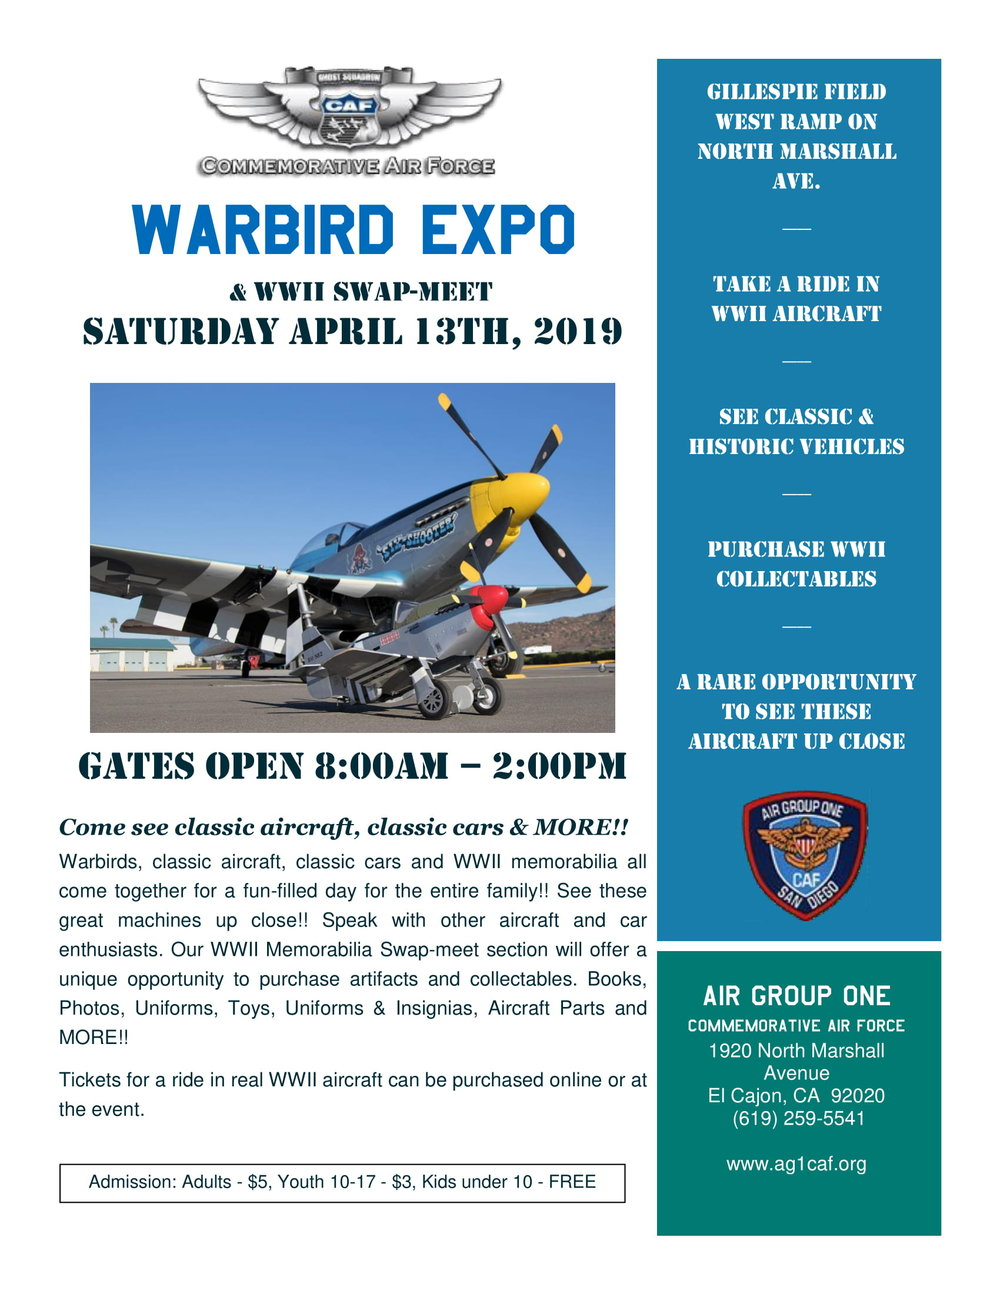 WB Expo 2019 Flyer 2-1.jpg